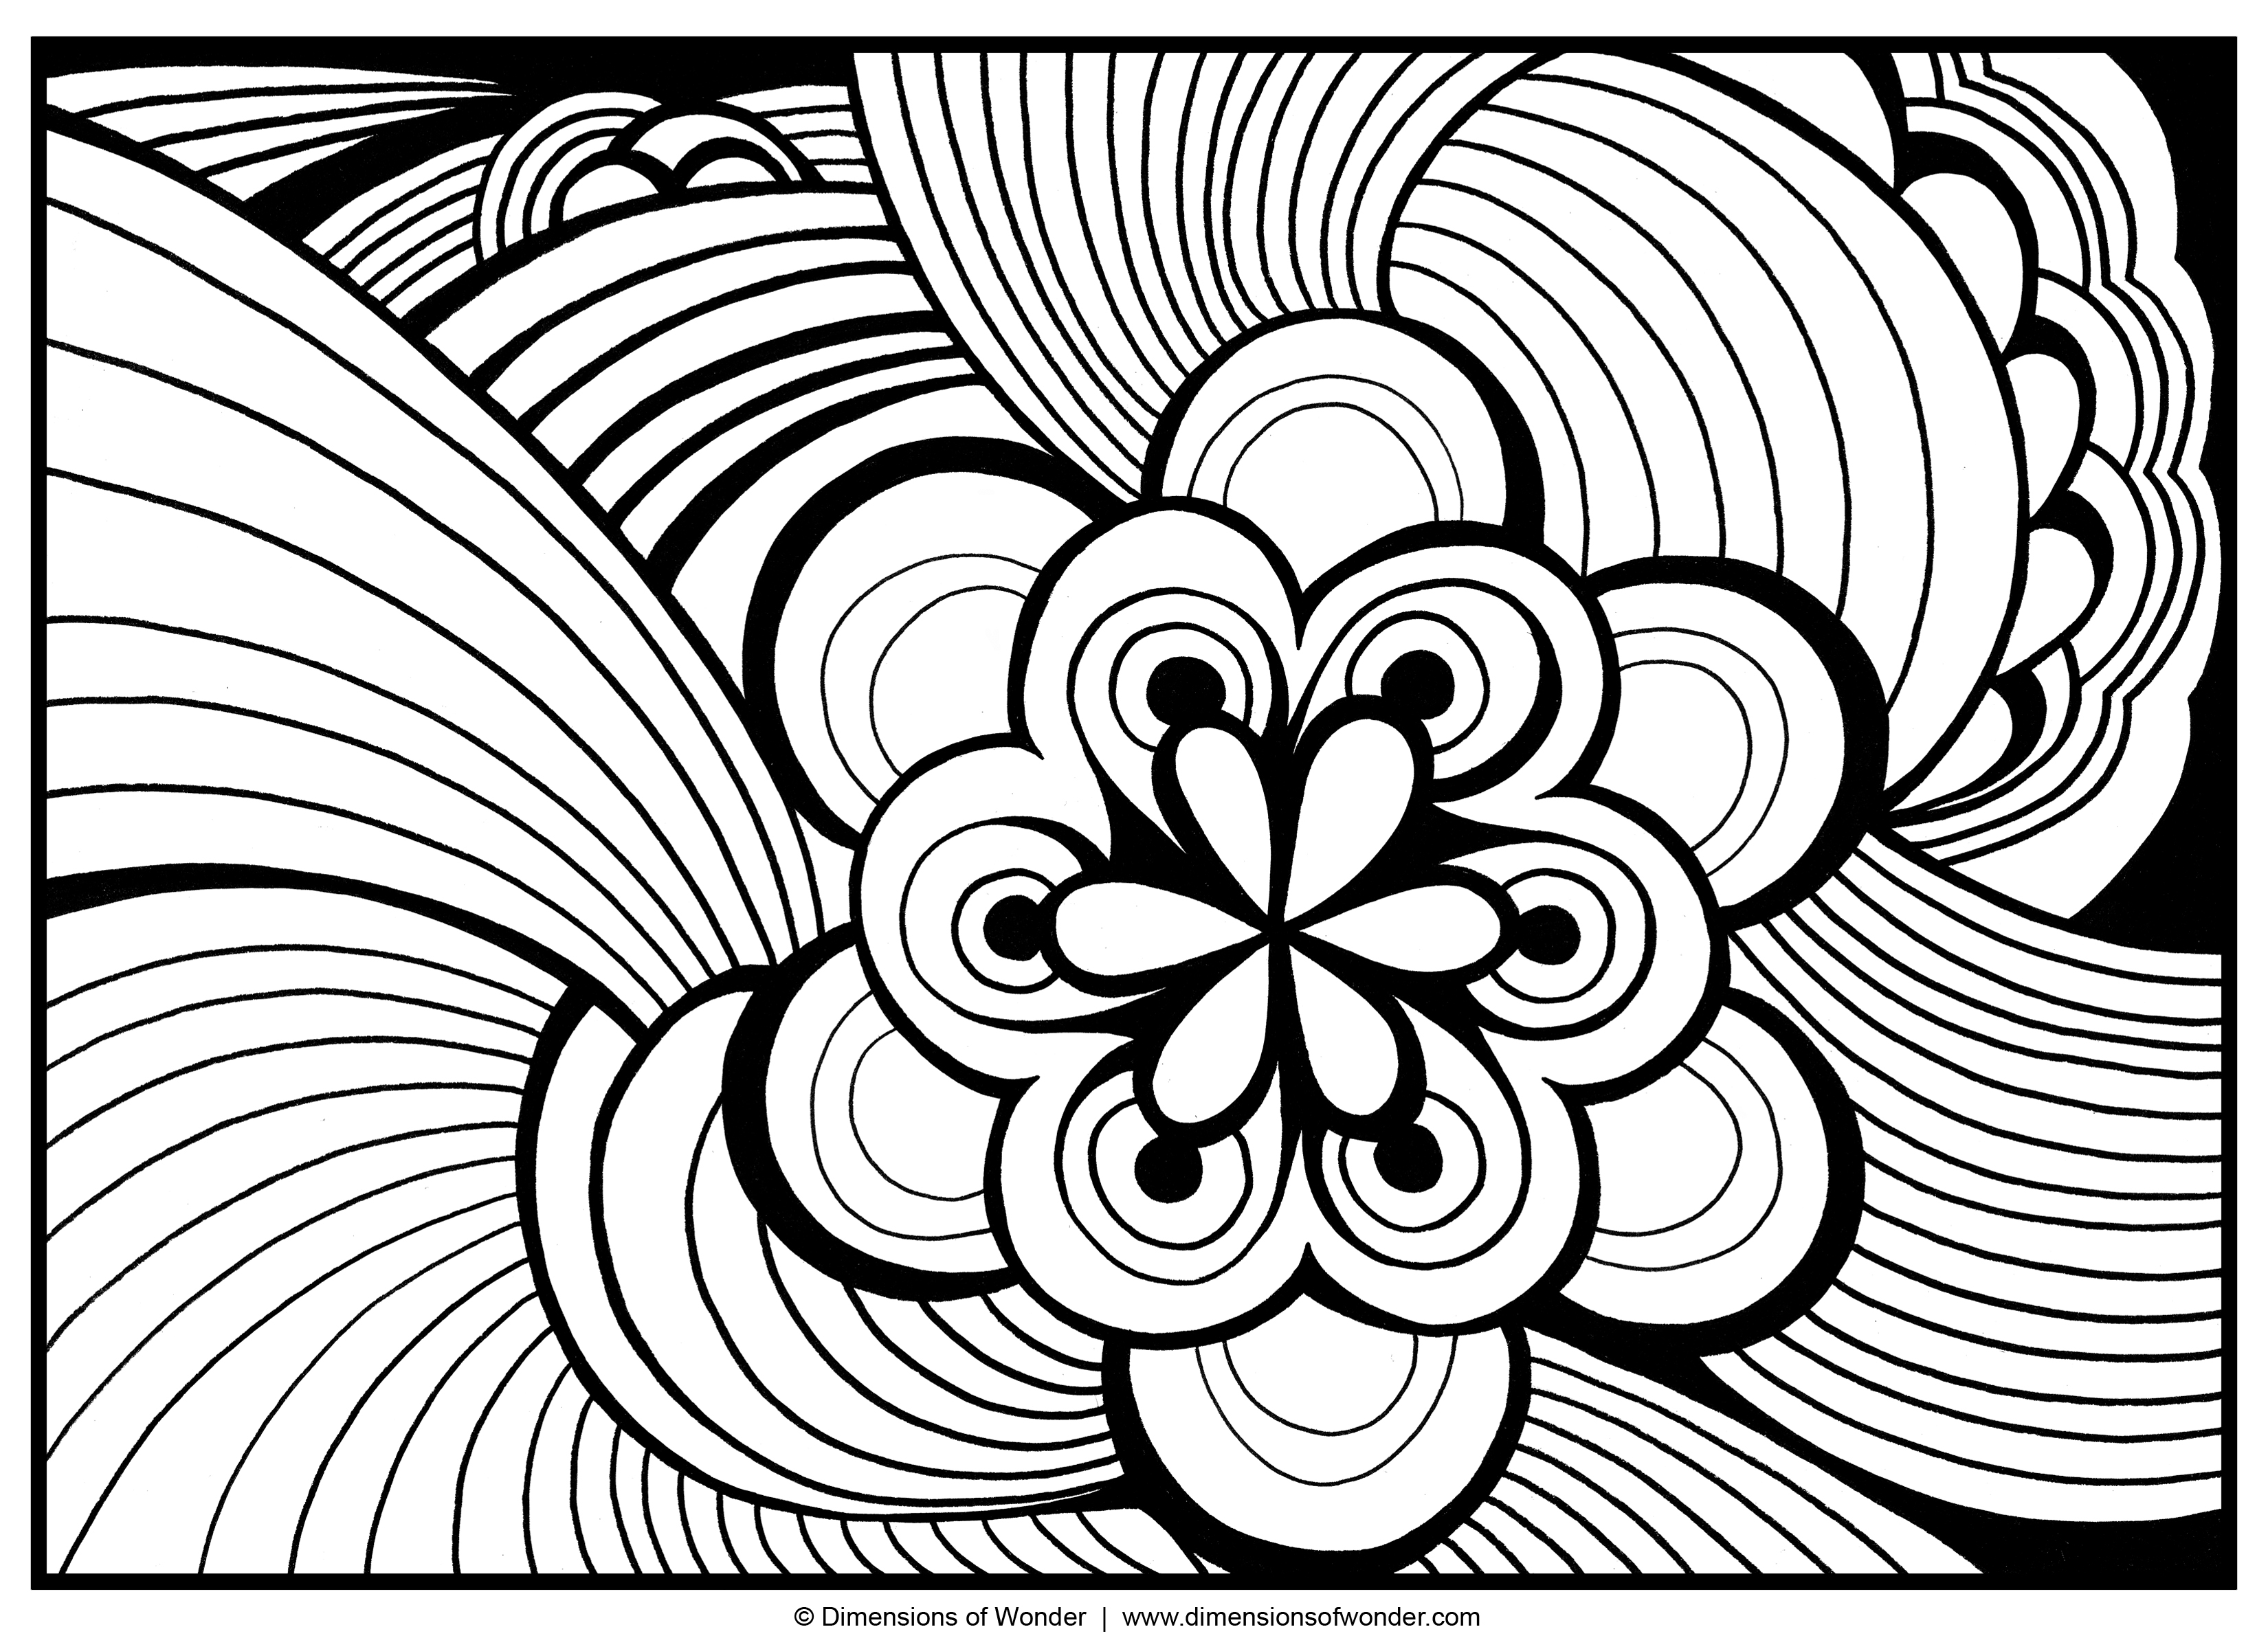 Coloring pages to color online for free - Online Coloring Pages For 10 Year Olds Coloring Pages 10 Year Olds Abstract Adult Colouring